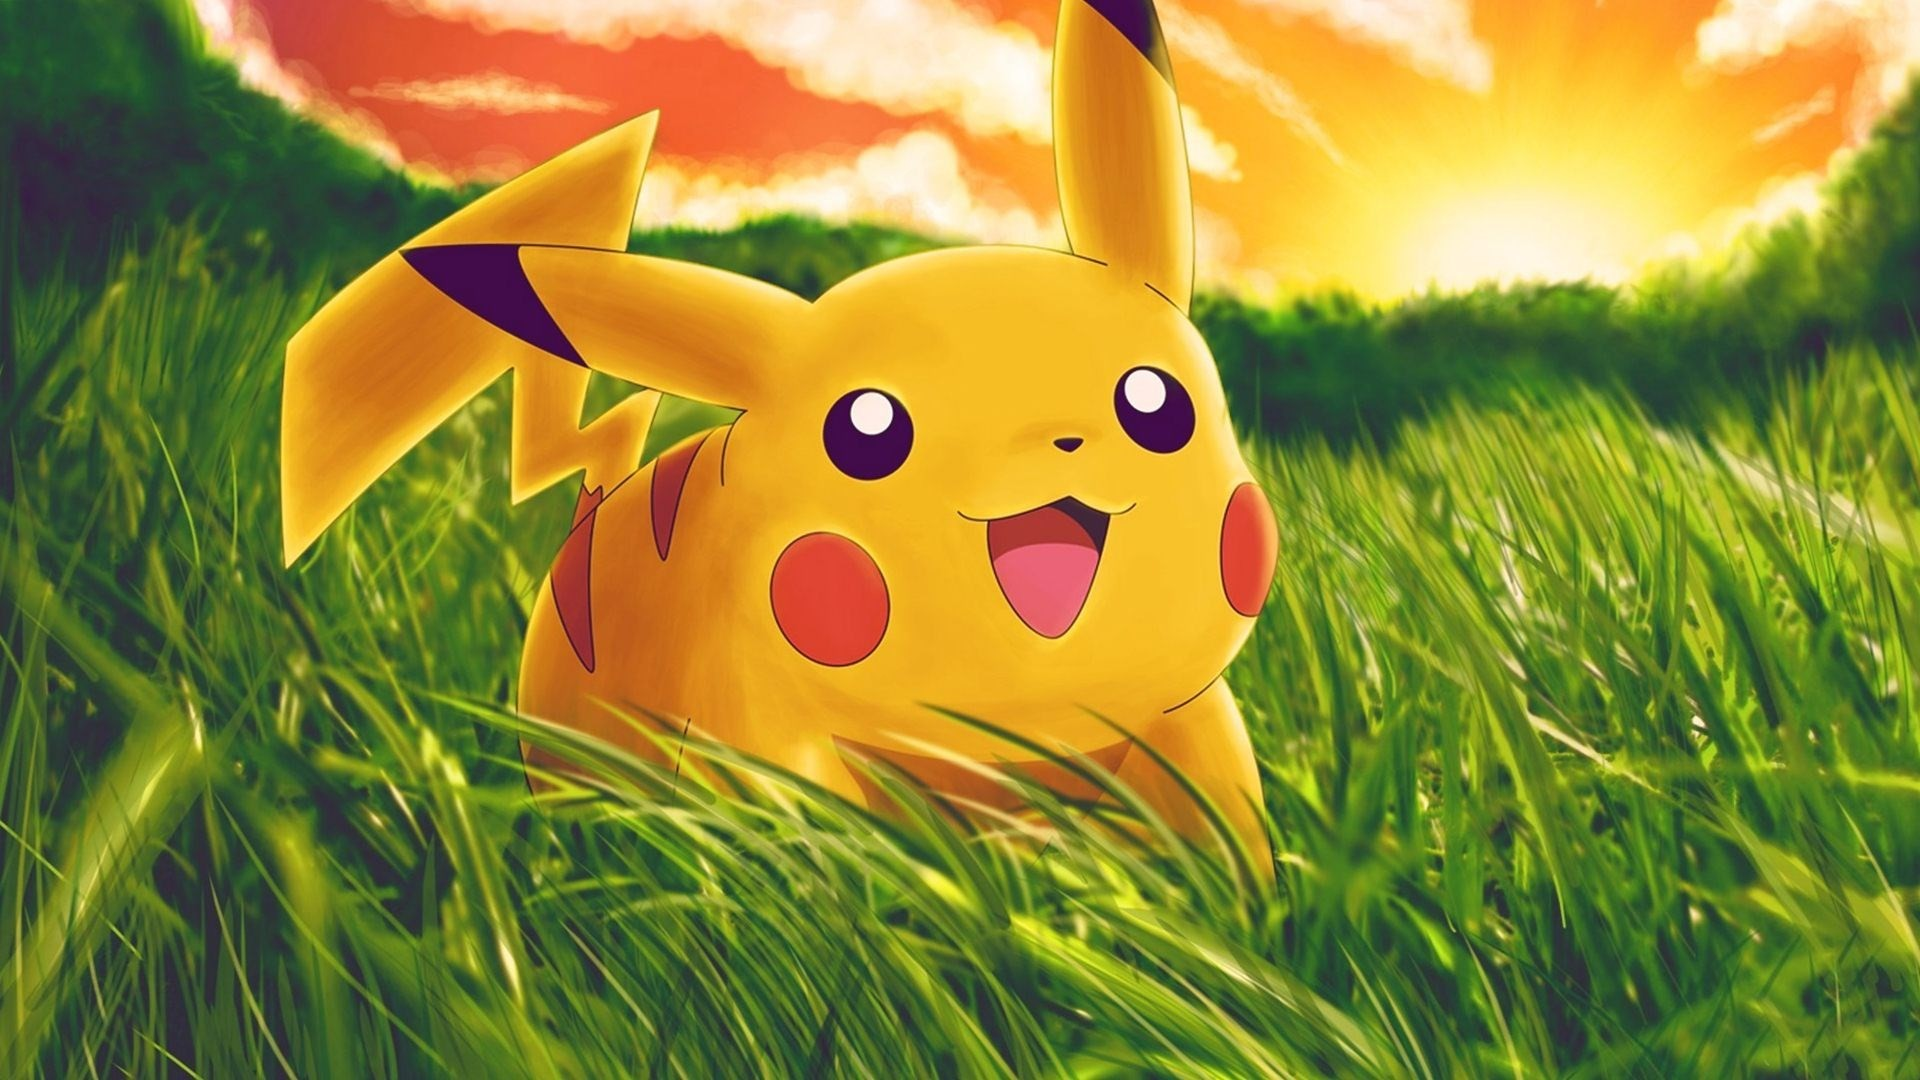 Download 3d Moving Wallpapers For Windows 7 Pikachu Background 183 ① Download Free Stunning Full Hd